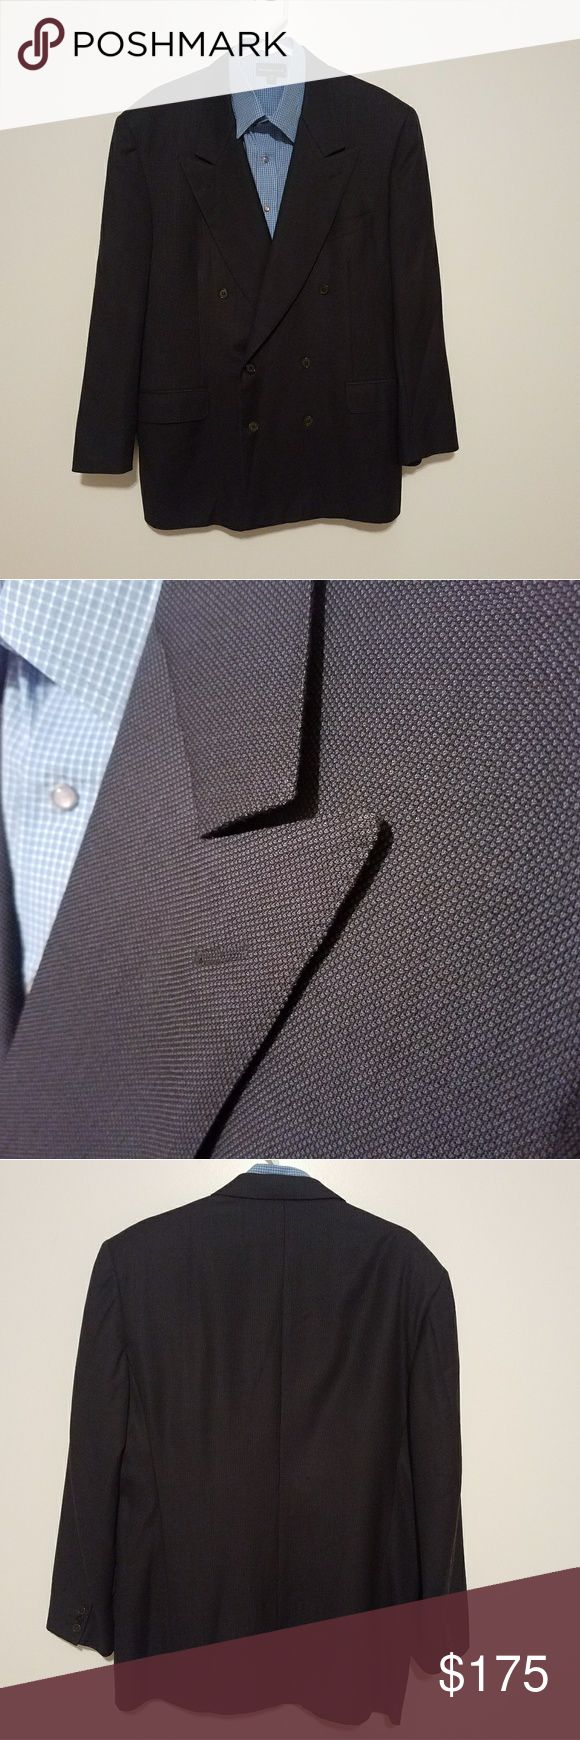 Canali Dark Blue 44R Double Breasted Sports Coat Gently worn and well taken care of. Made in Italy. It has some wear noticibale on the inside pocket. No other rips, tears, stains or other imperfections were found.  ***SHIRT NOT INCLUDED***  Measurements taken while laying flat: Size: 54R EUR/44R US Color: Dark Blue Material: 100% Wool Chest (Underarm to Underarm): 24 Waist: 21.5 Length (From Bottom of Collar): 31 Sleeves (Top of shoulder to end of cuff): 24 Shoulders (Seam to seam): 20 Vent…